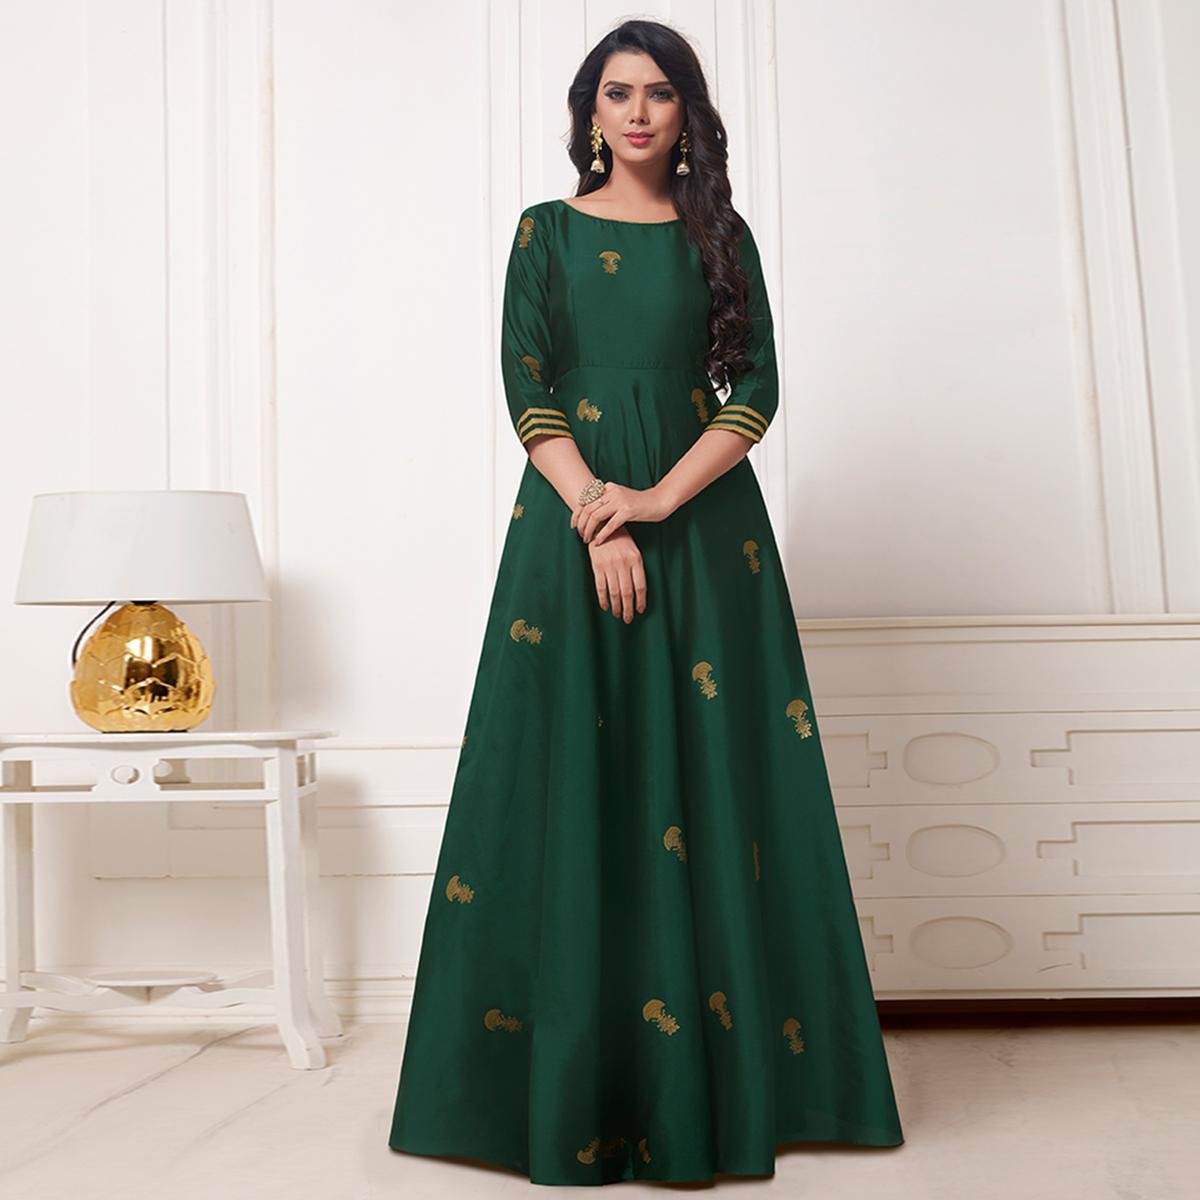 Captivating Pine Green Colored Party Wear Woven Satin Jacquard Gown